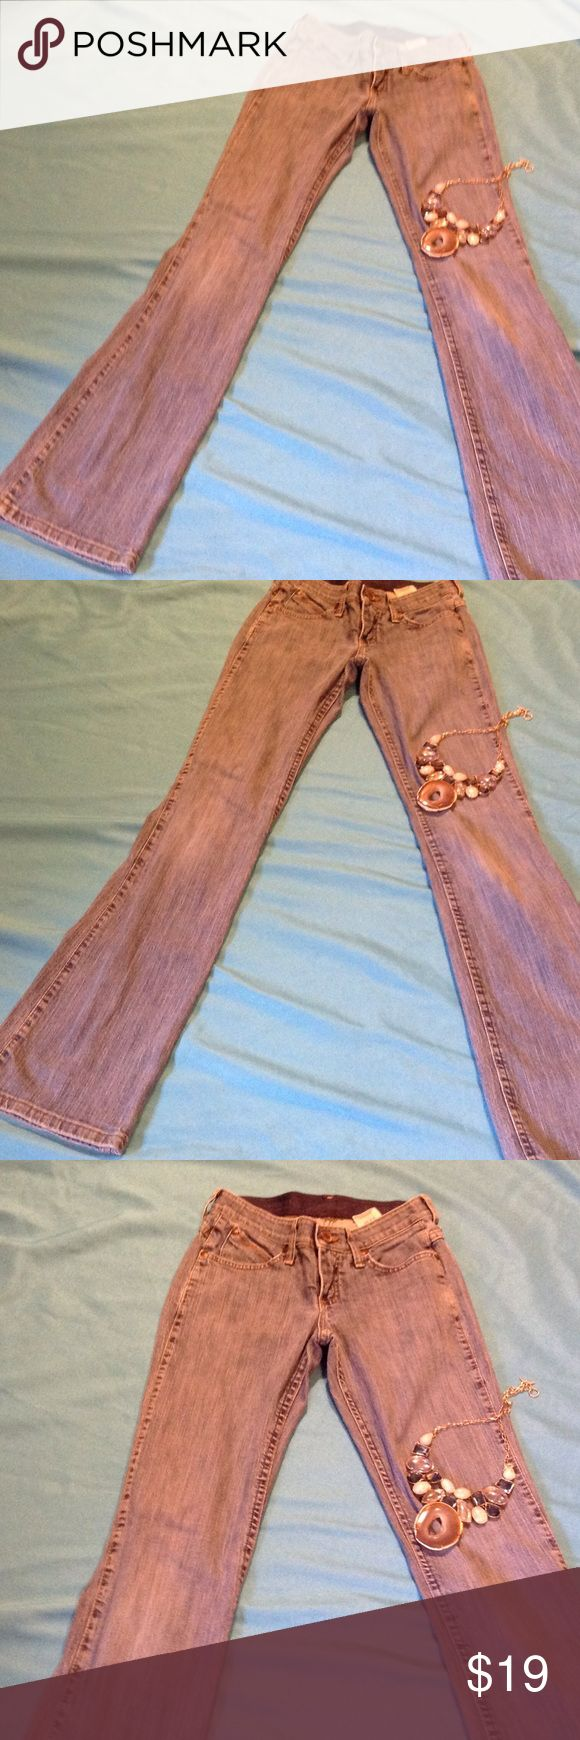 """Ladies Wrangler 👖 in bootcut size 0/34 Cute Wrangler jeans for any cowgirl! In size 0/34. Bootcut leg. In excellent preowned condition. Measurements are as follows: waist 26"""", hips 34"""", waist to cuff 40"""". Wrangler Jeans Boot Cut"""